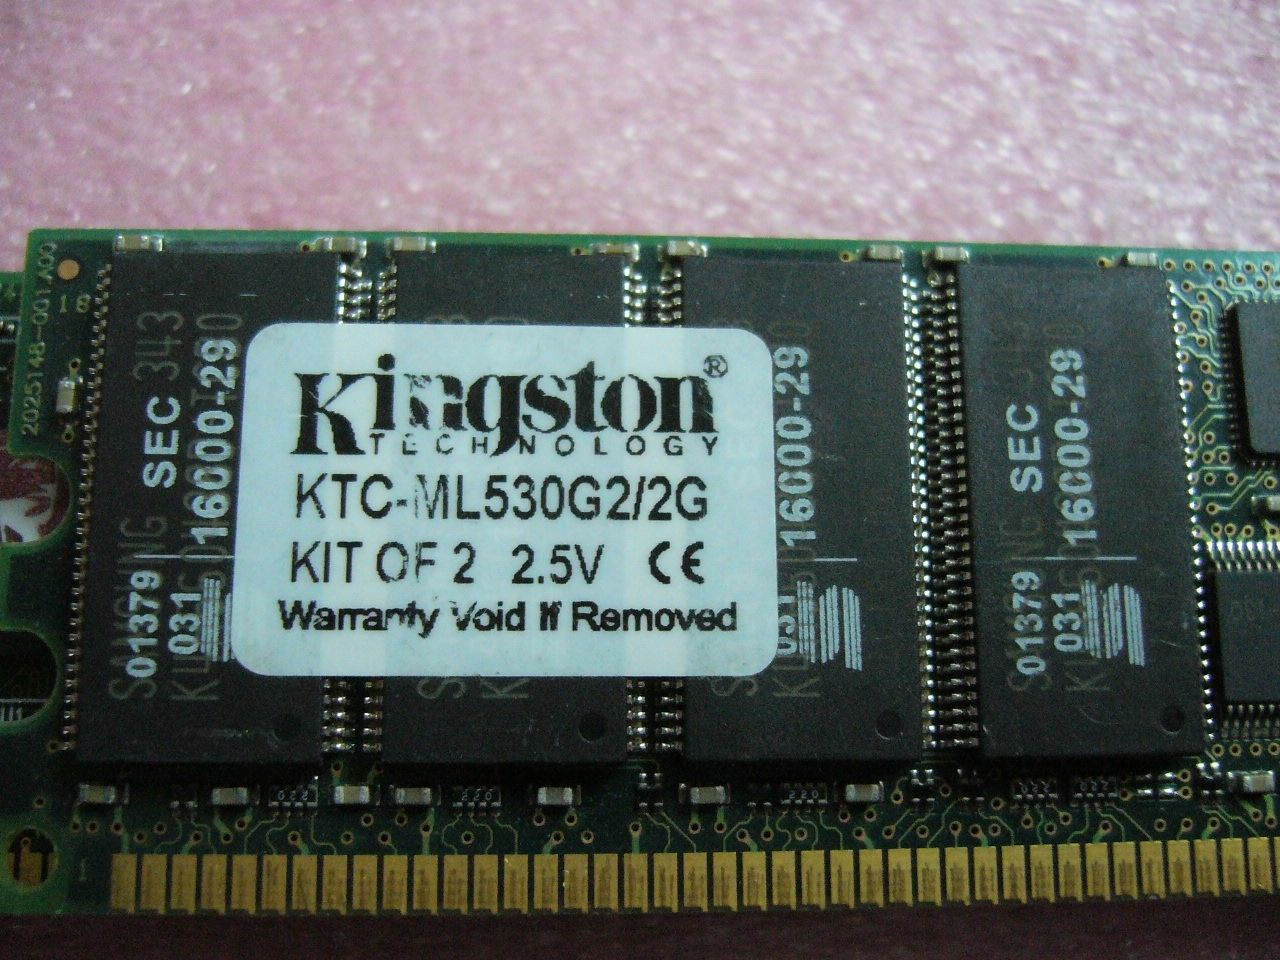 QTY 1x 1GB DDR PC-2100R 266Mhz ECC Registered Server memory Kingston KTC-ML530G2